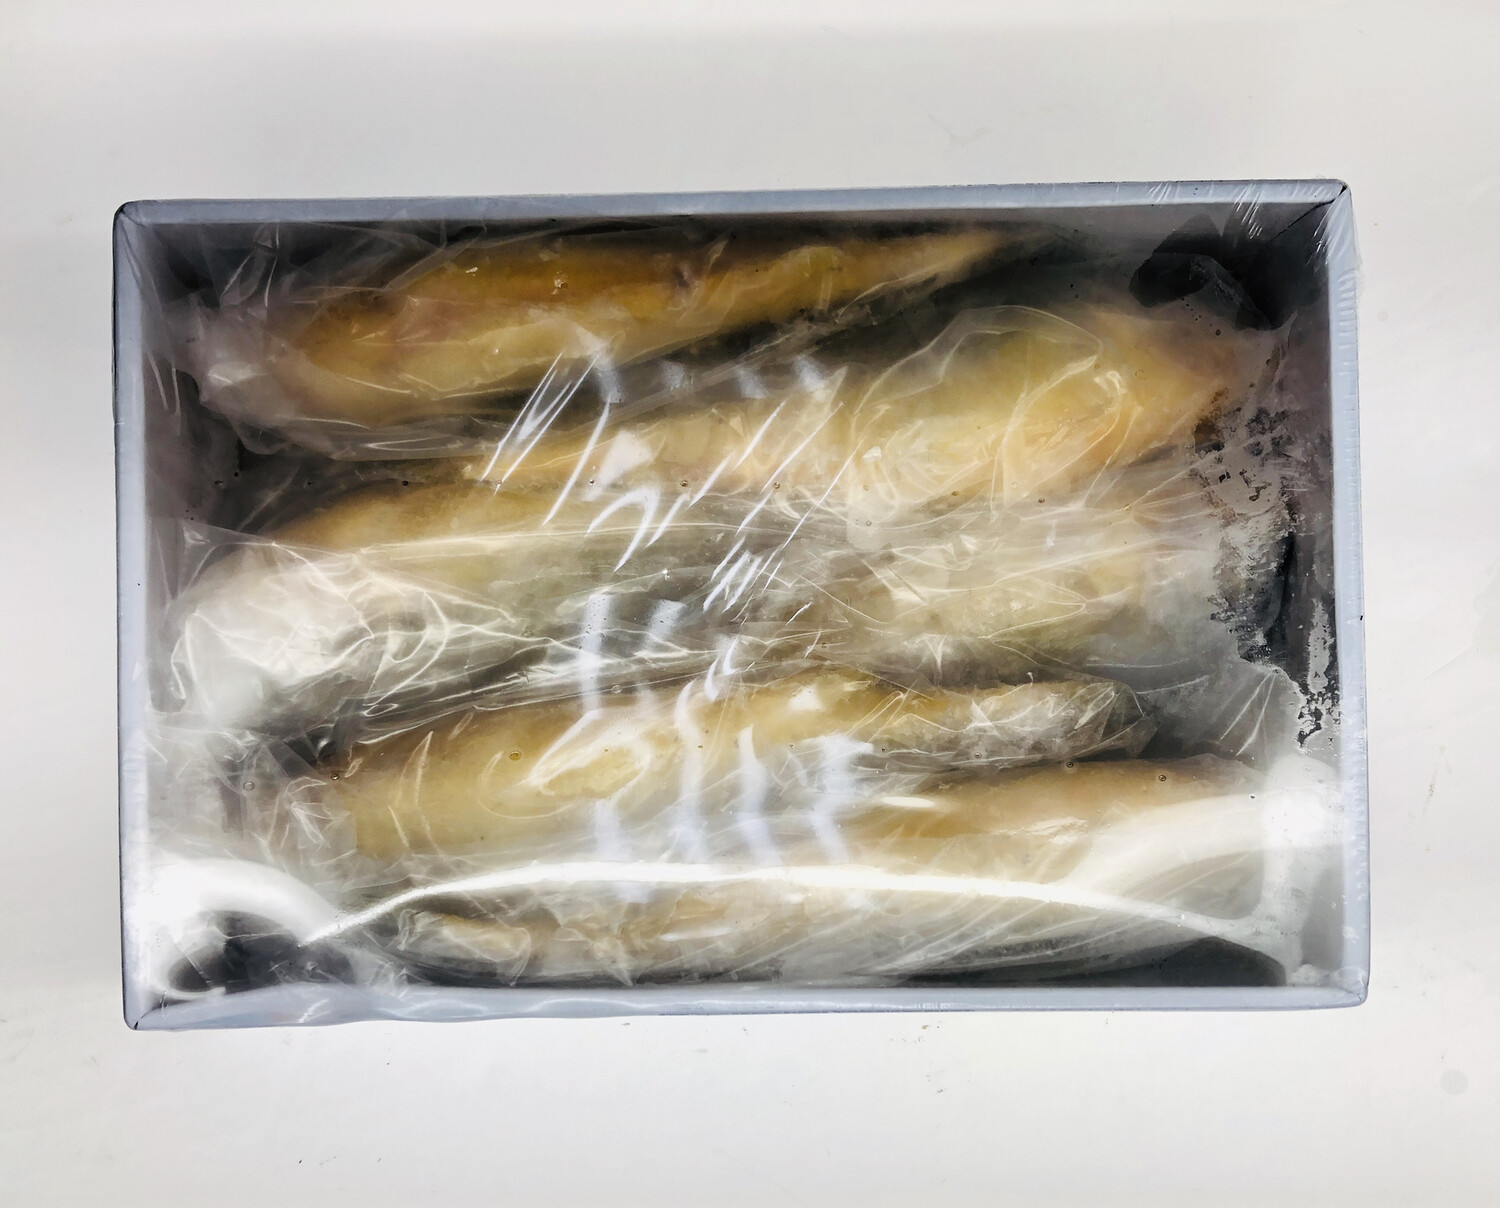 秀 冻黄鱼 XIU Frozen Yellow Croaker 1.84kg/3.2LB